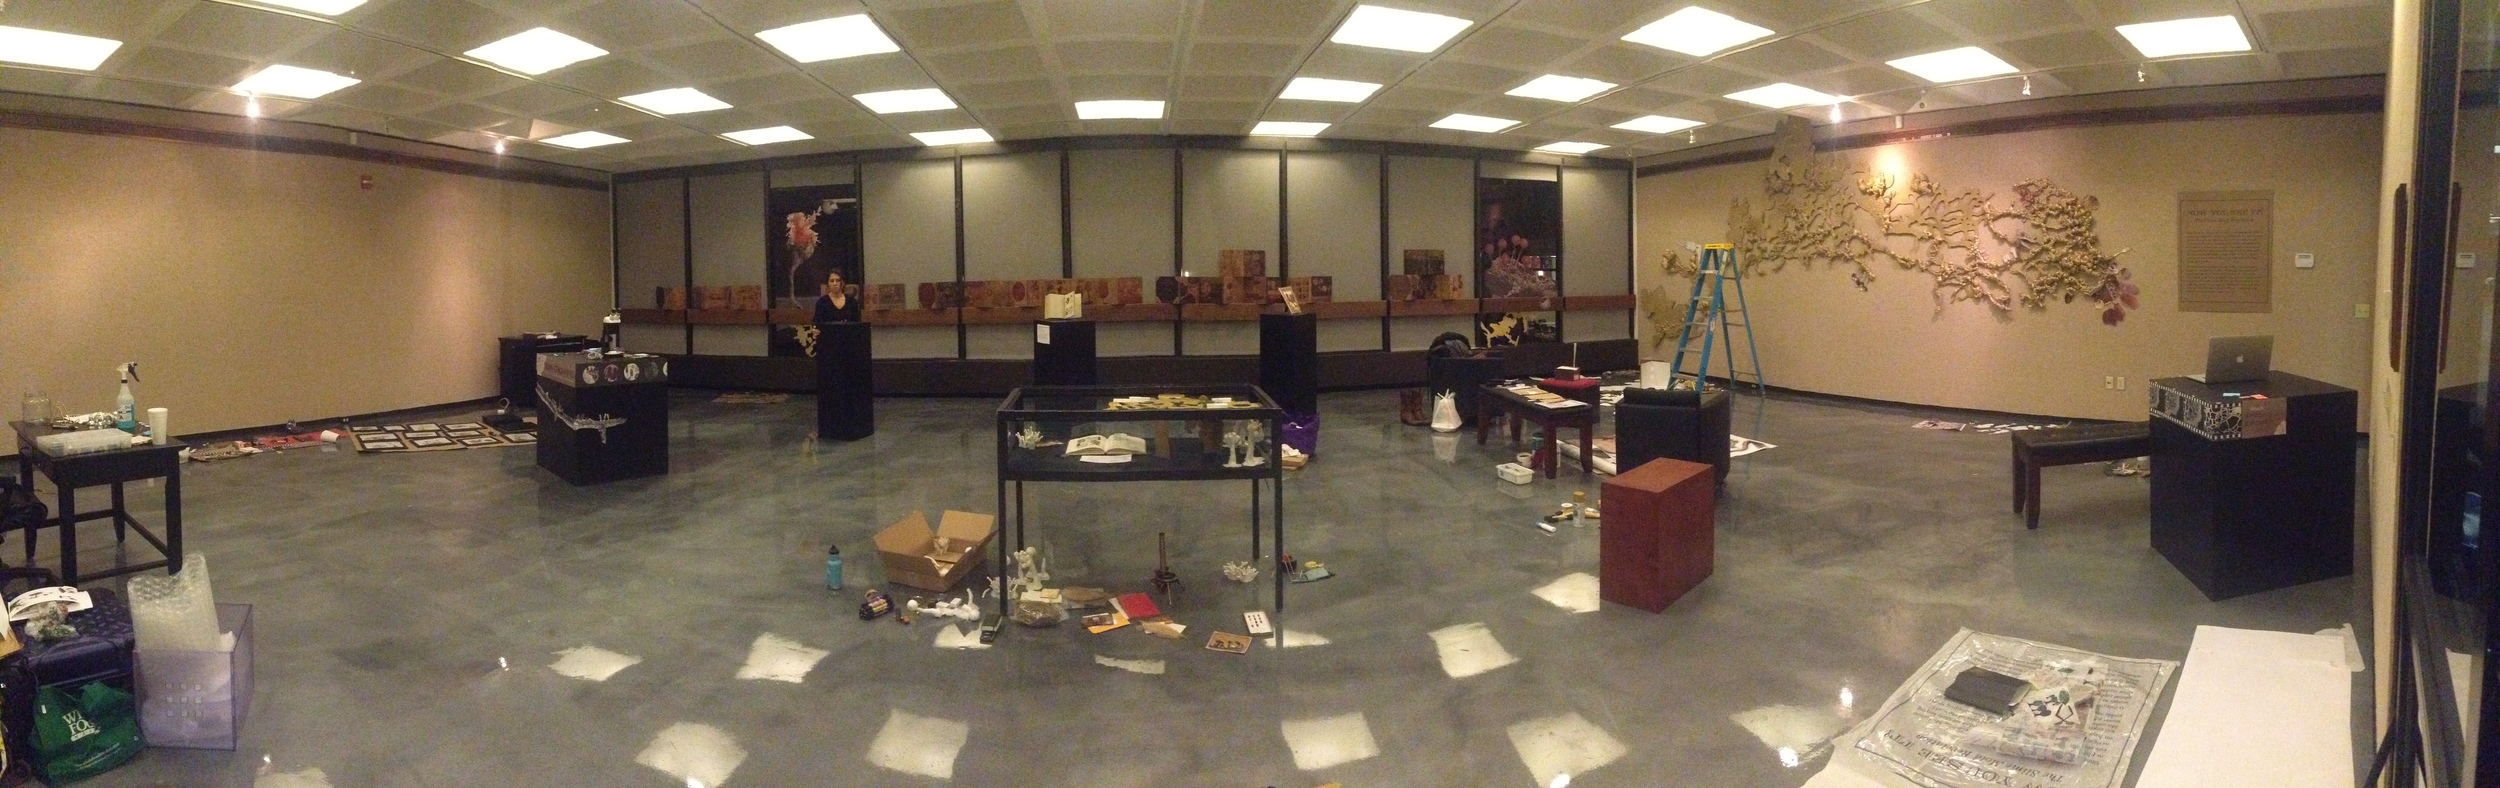 12 hours before the opening lots of stuff was still sprawled on the floor, plus I spilled some honey near my snack pile.